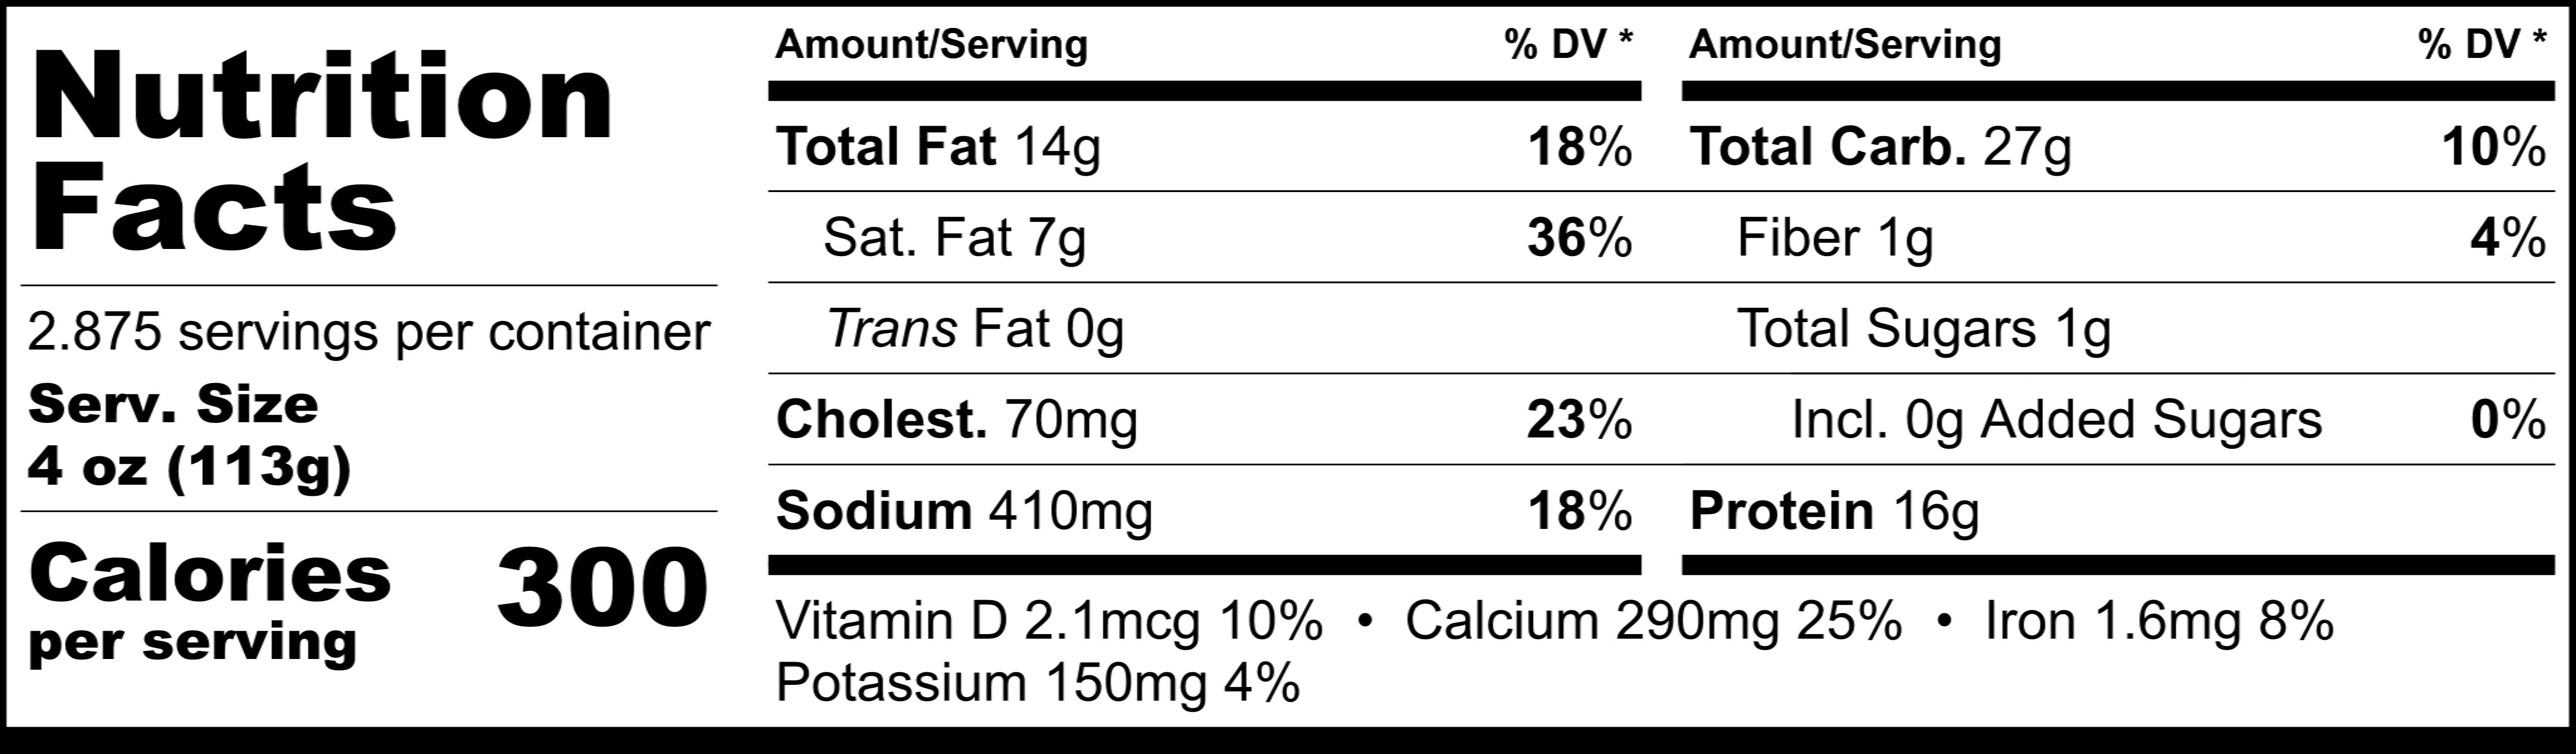 Pappardelle's Basil Pesto Ravioli Nutritional Statement